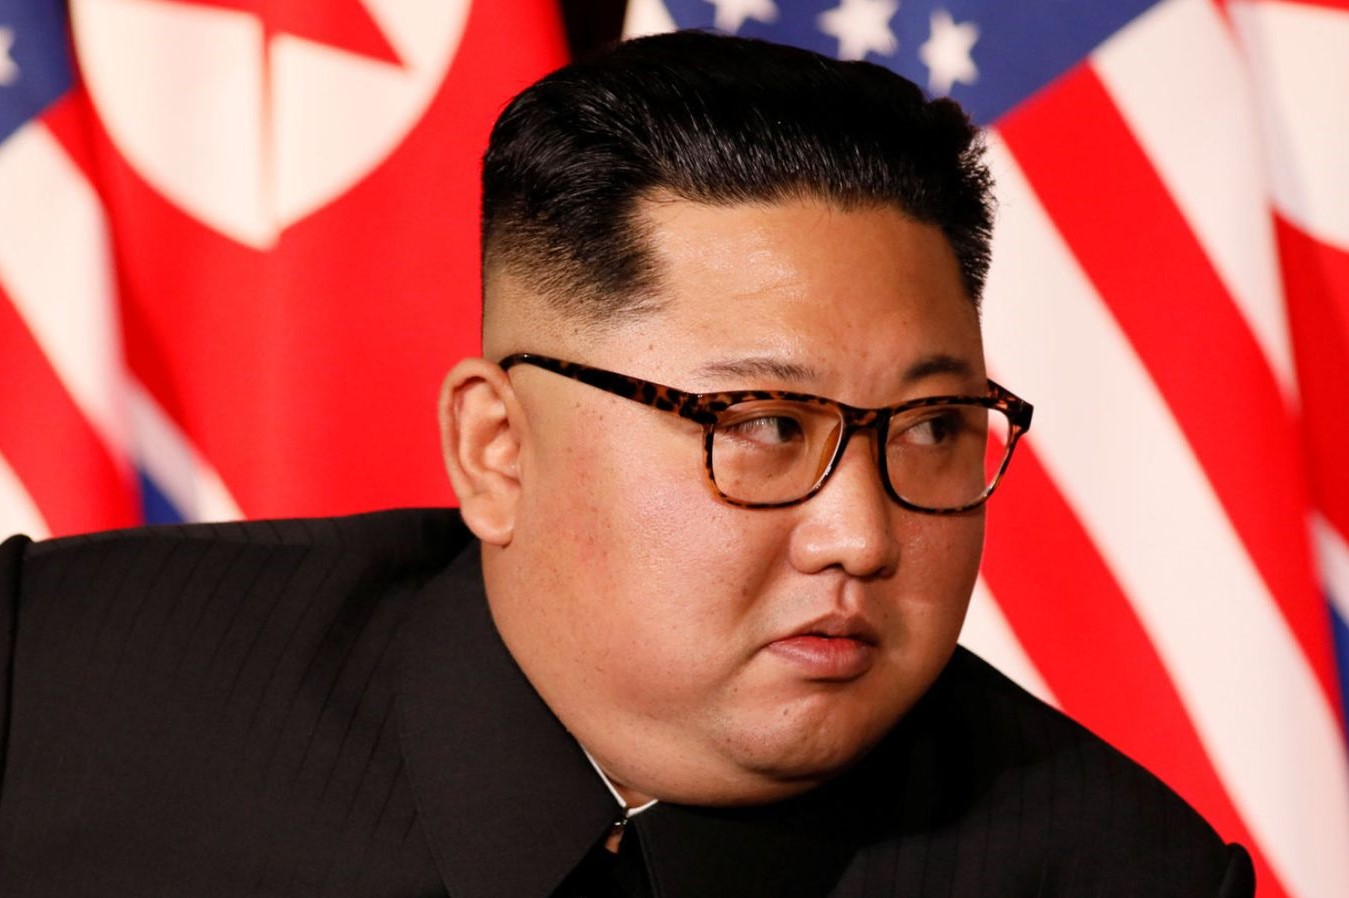 Will Kim Jong Un announce of suspending nuclear talks with US?